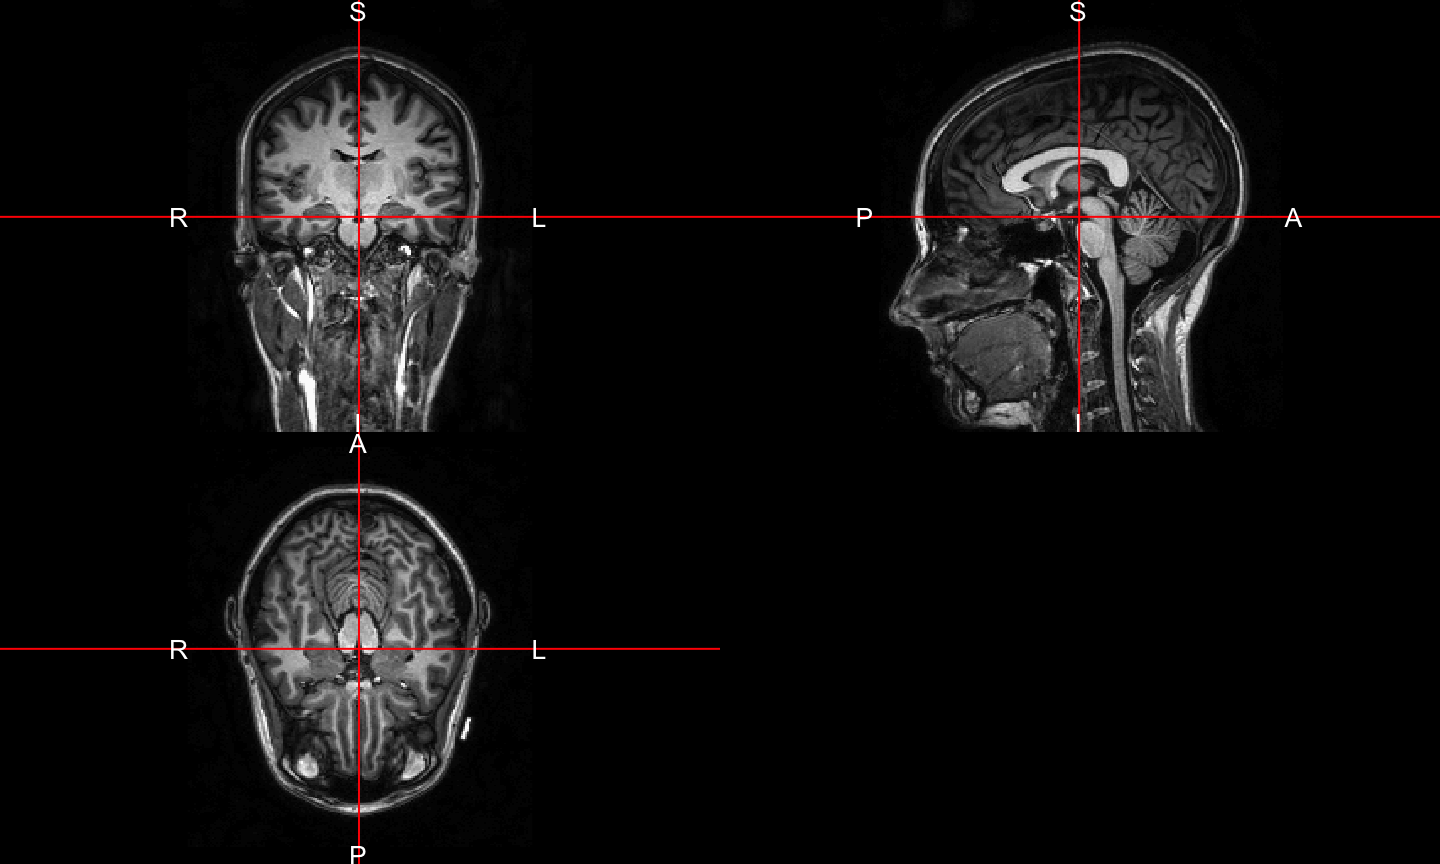 Neuroconductor: Medical Image Analysis in R